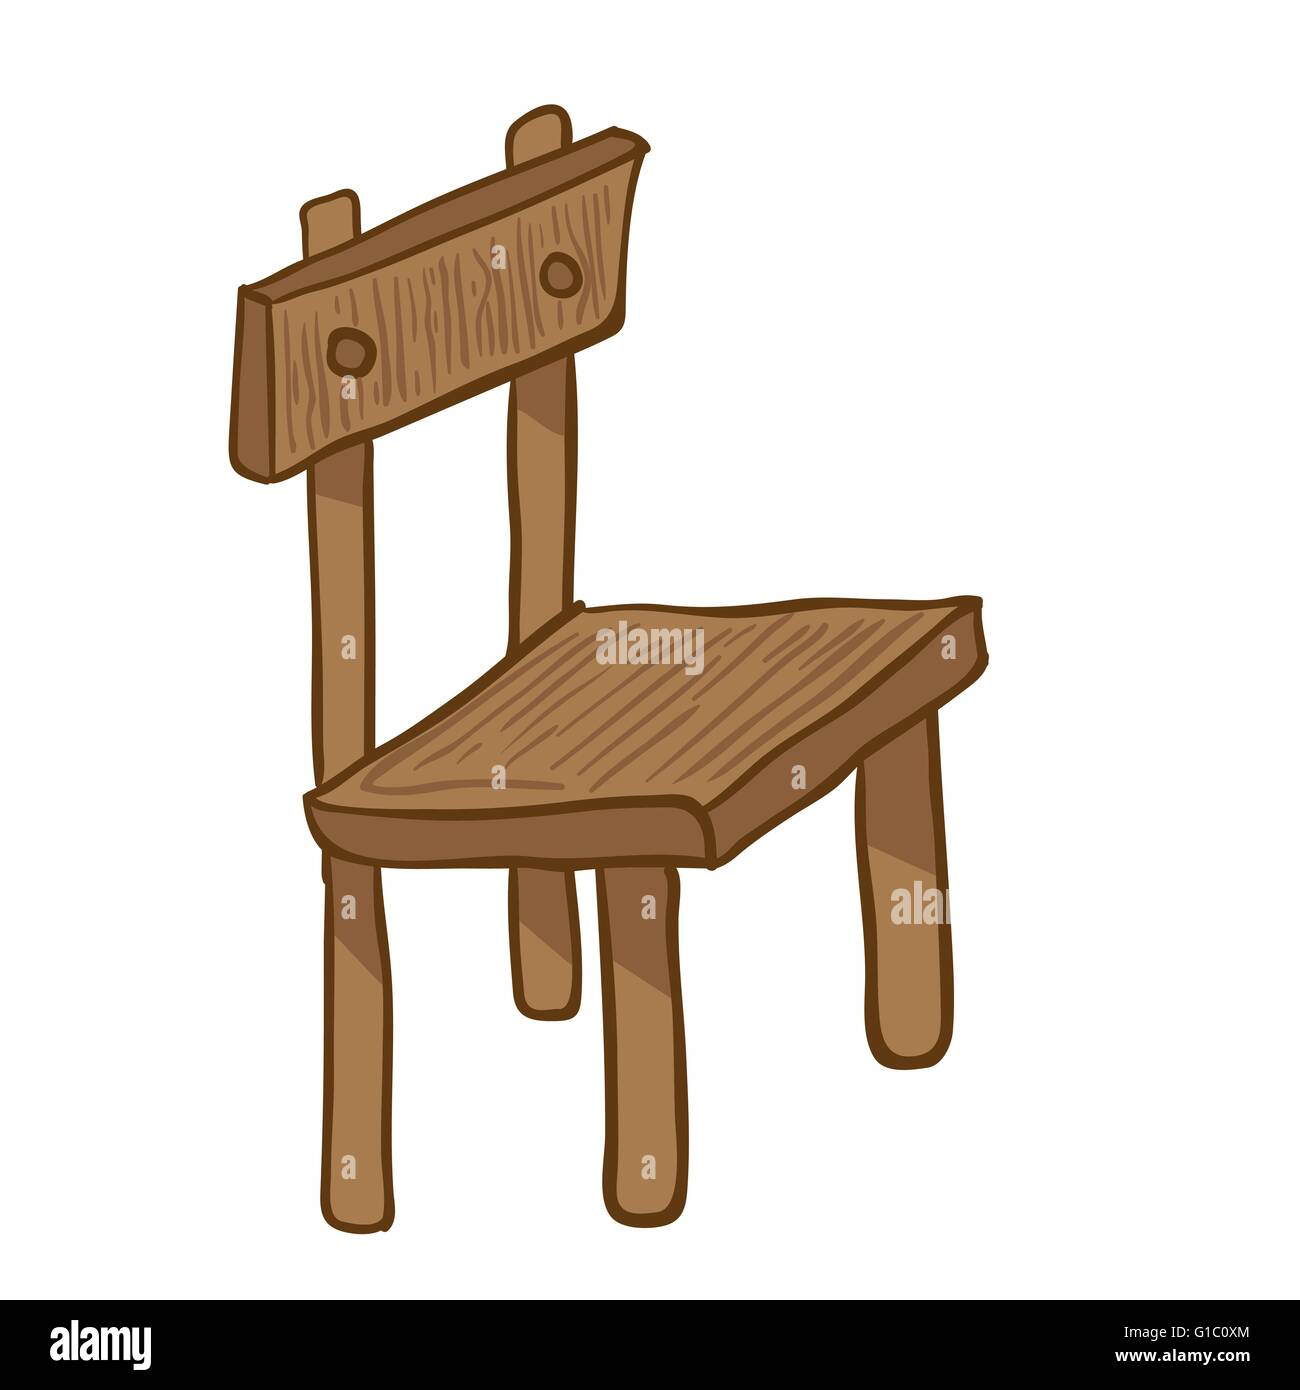 Wooden chair cartoon doodle on white stock vector art